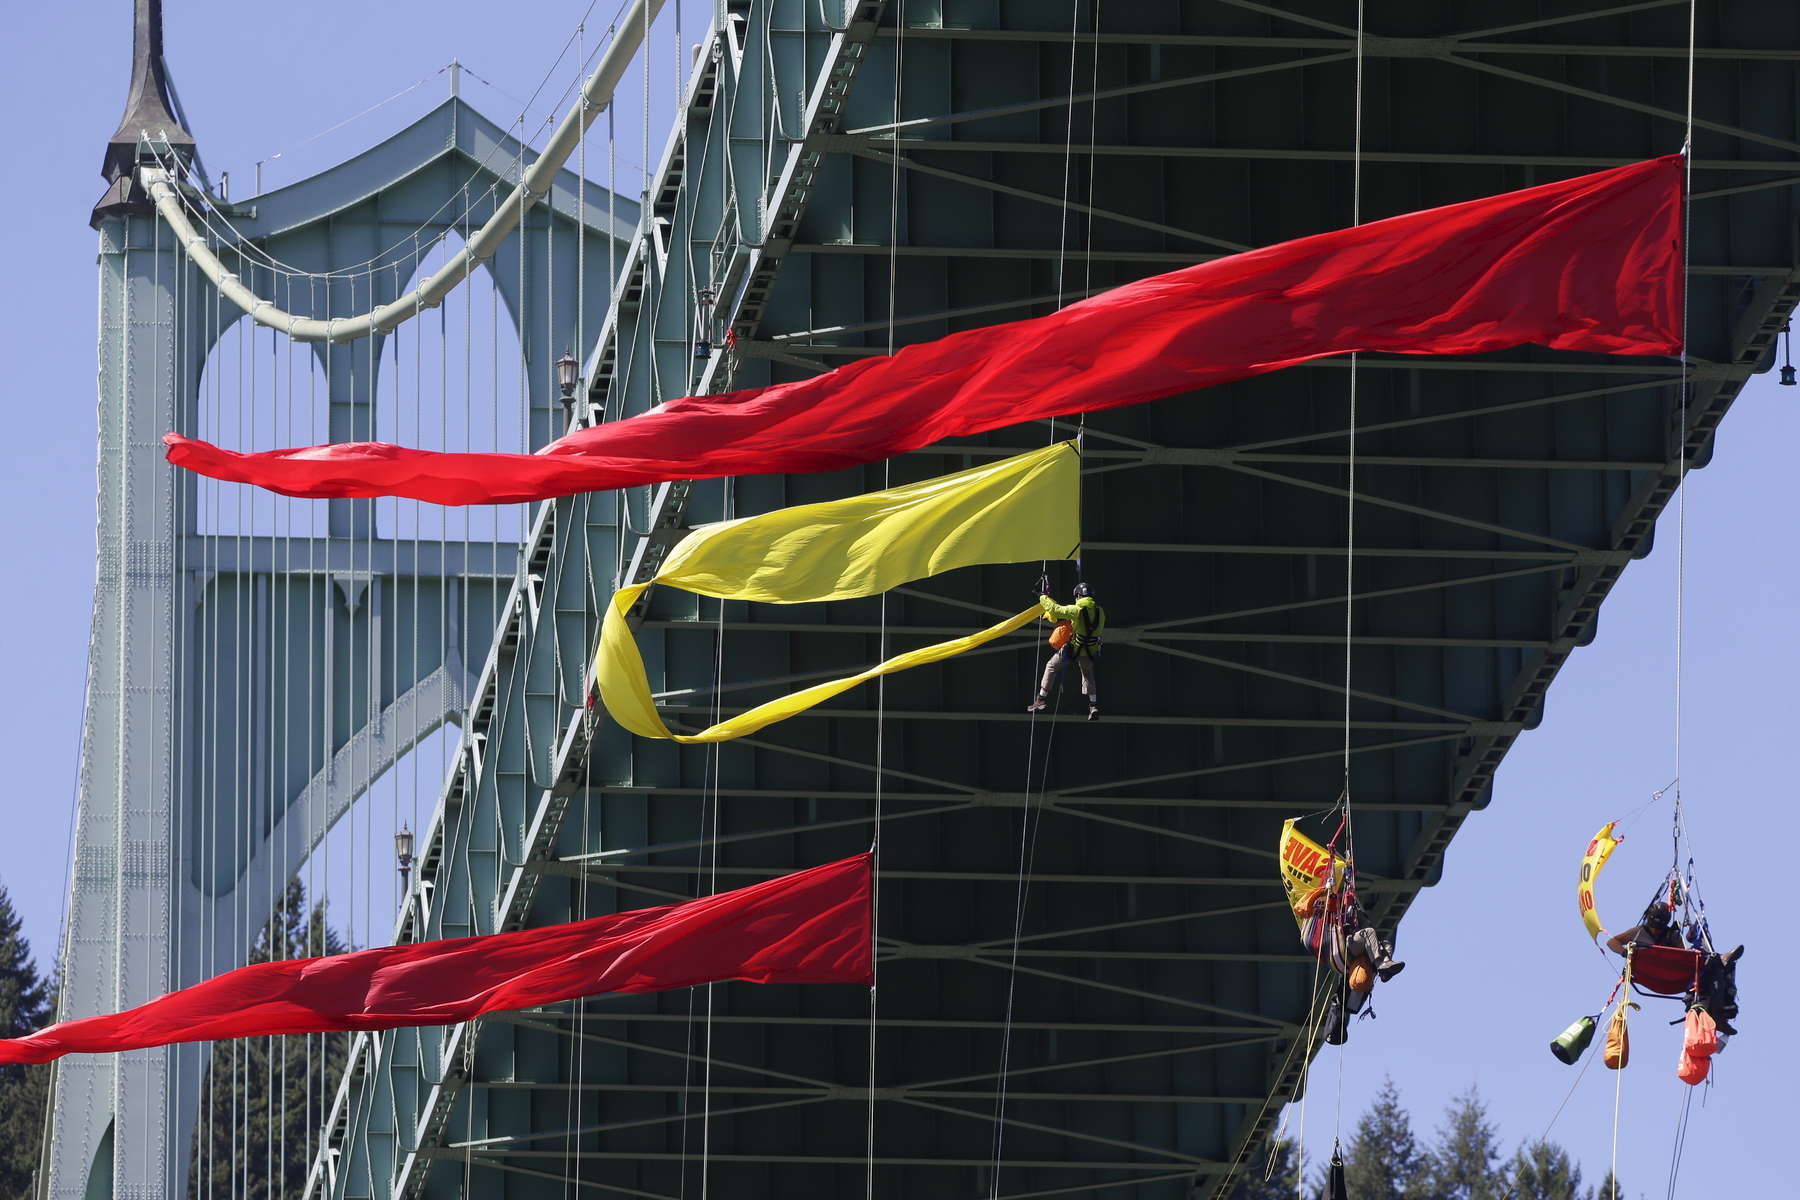 Greenpeace activists hang off the St Johns Bridge over the Willamette River to protest Shell Oil's drilling in the Arctic and attempt to prevent one of Shell's ships from heading to sea.